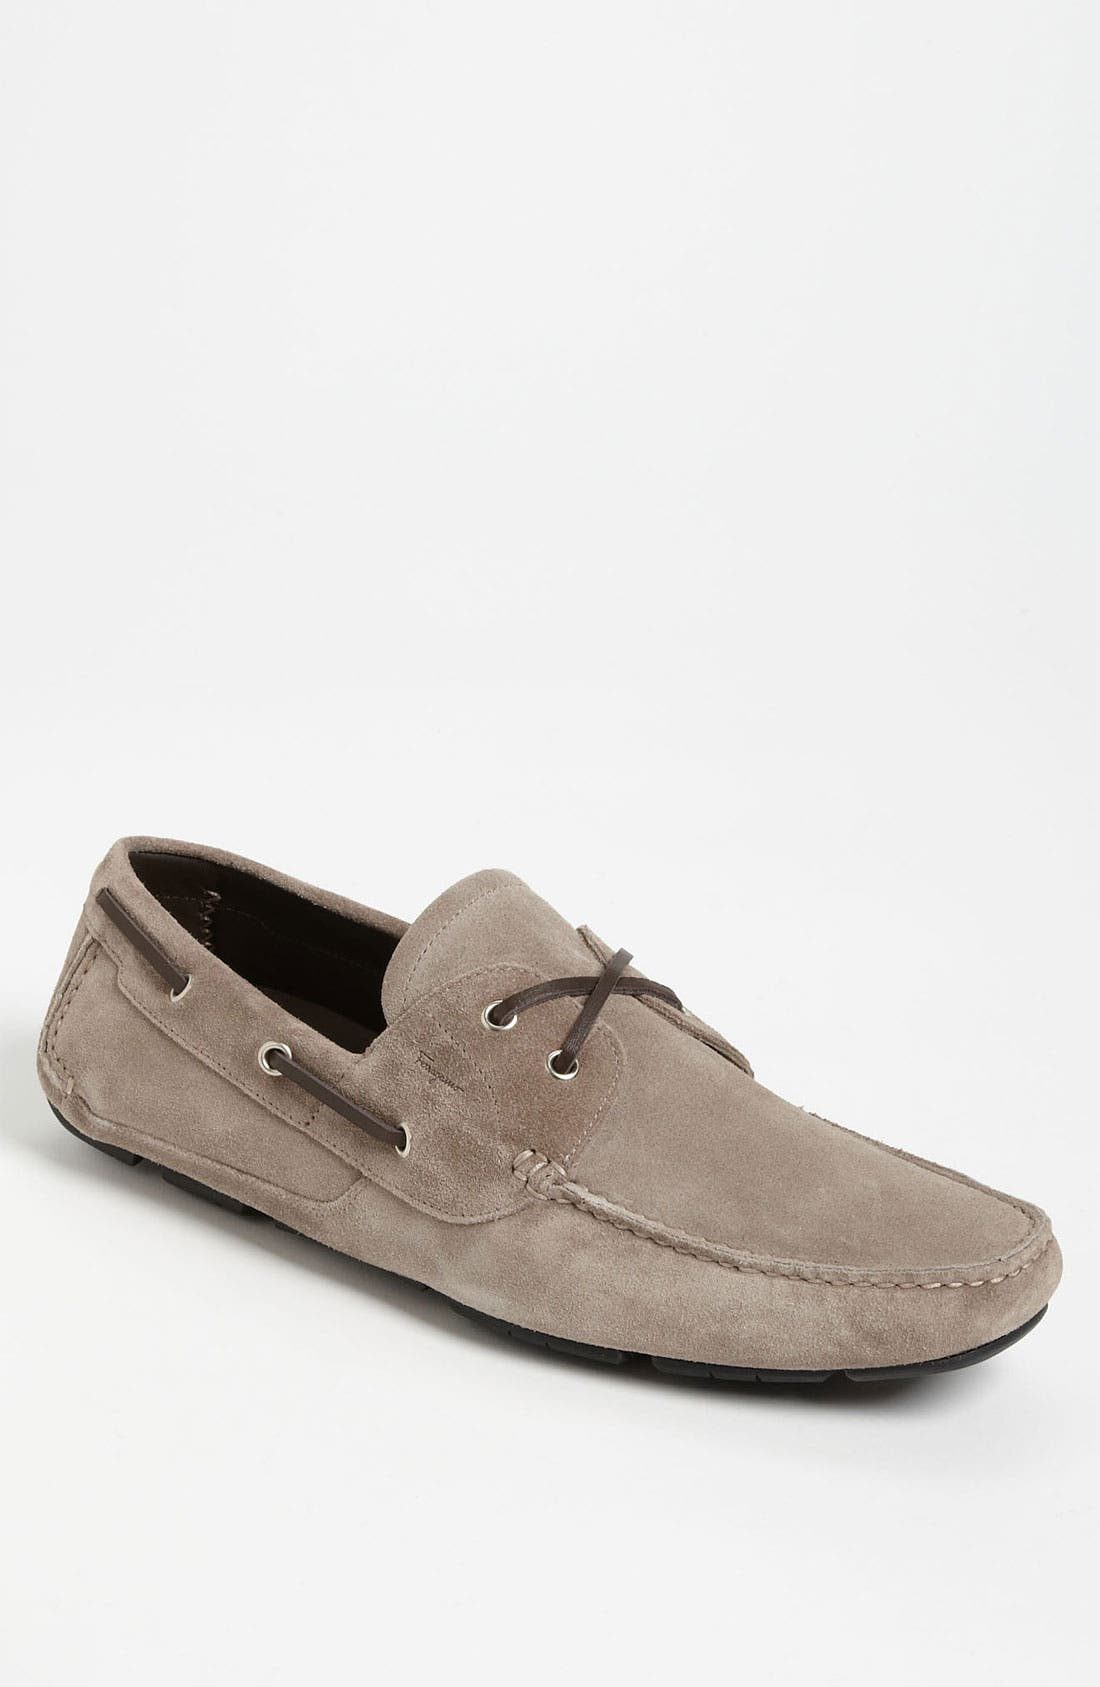 Alternate Image 1 Selected - Salvatore Ferragamo 'Anthony' Suede Driving Shoe